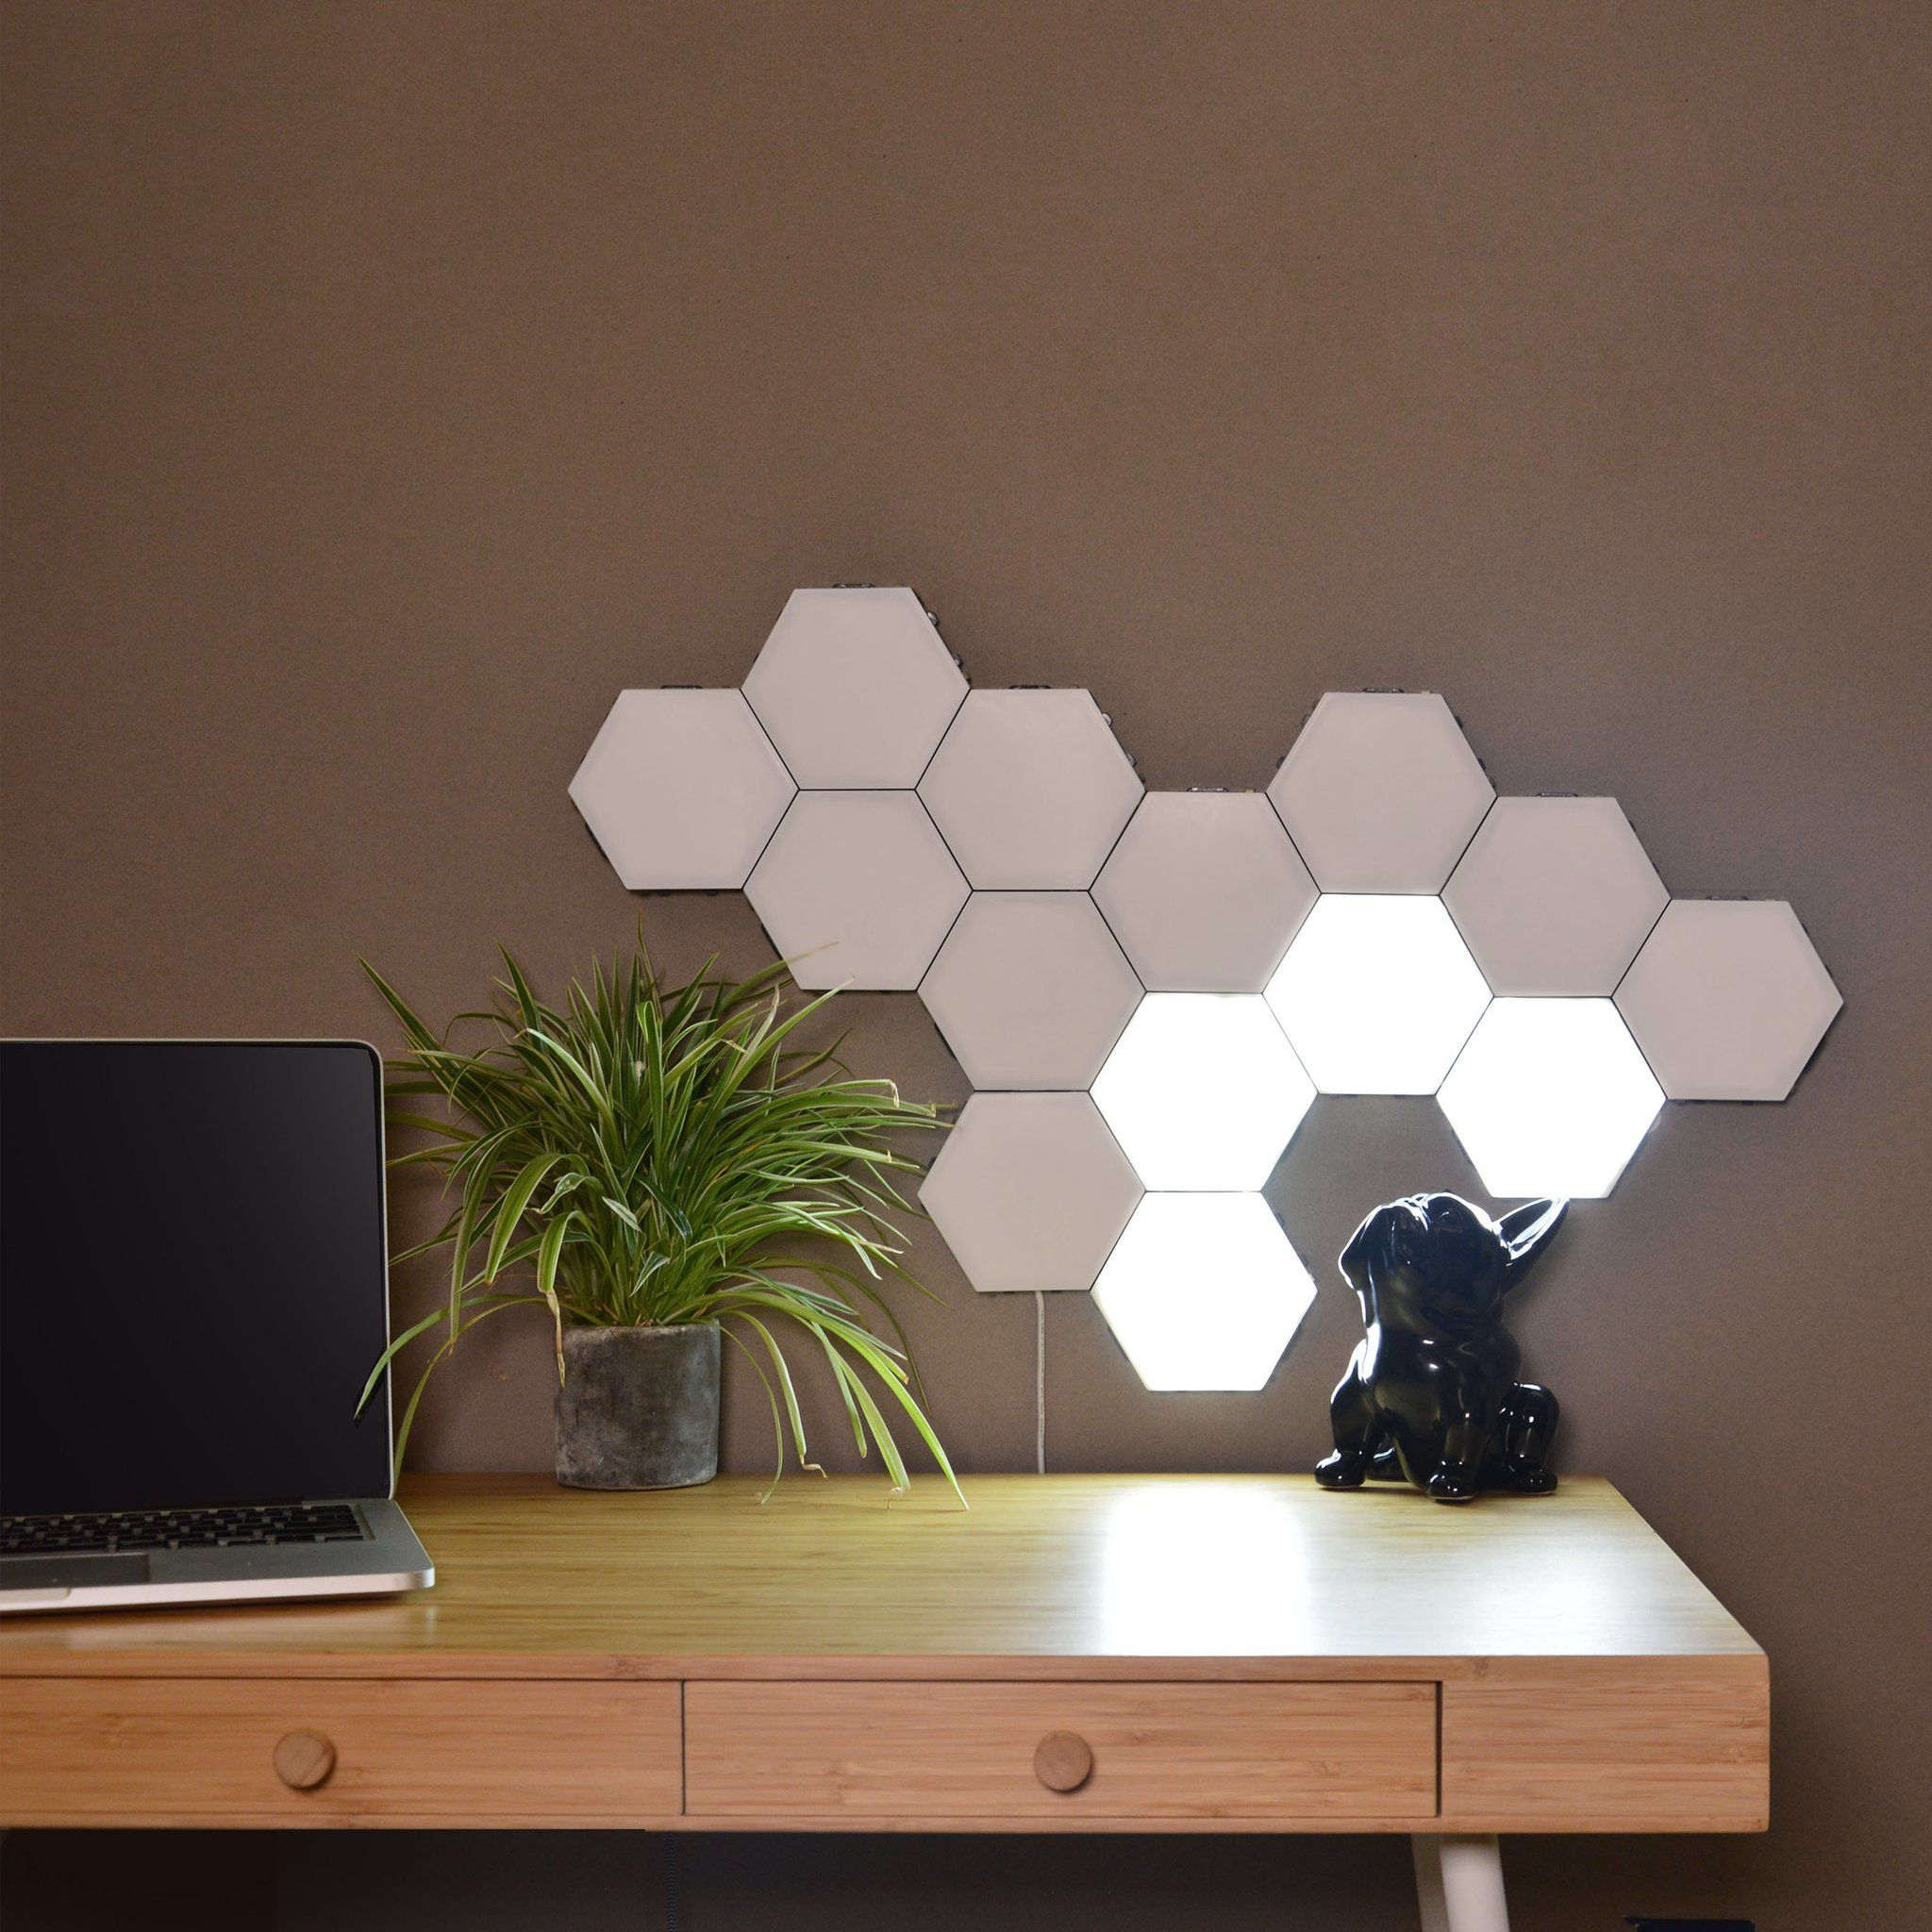 Touch Sensitive Modular Lighting Pack Helios Touch Touch Sensitive Lamp Creative Decor Led Wall Lamp